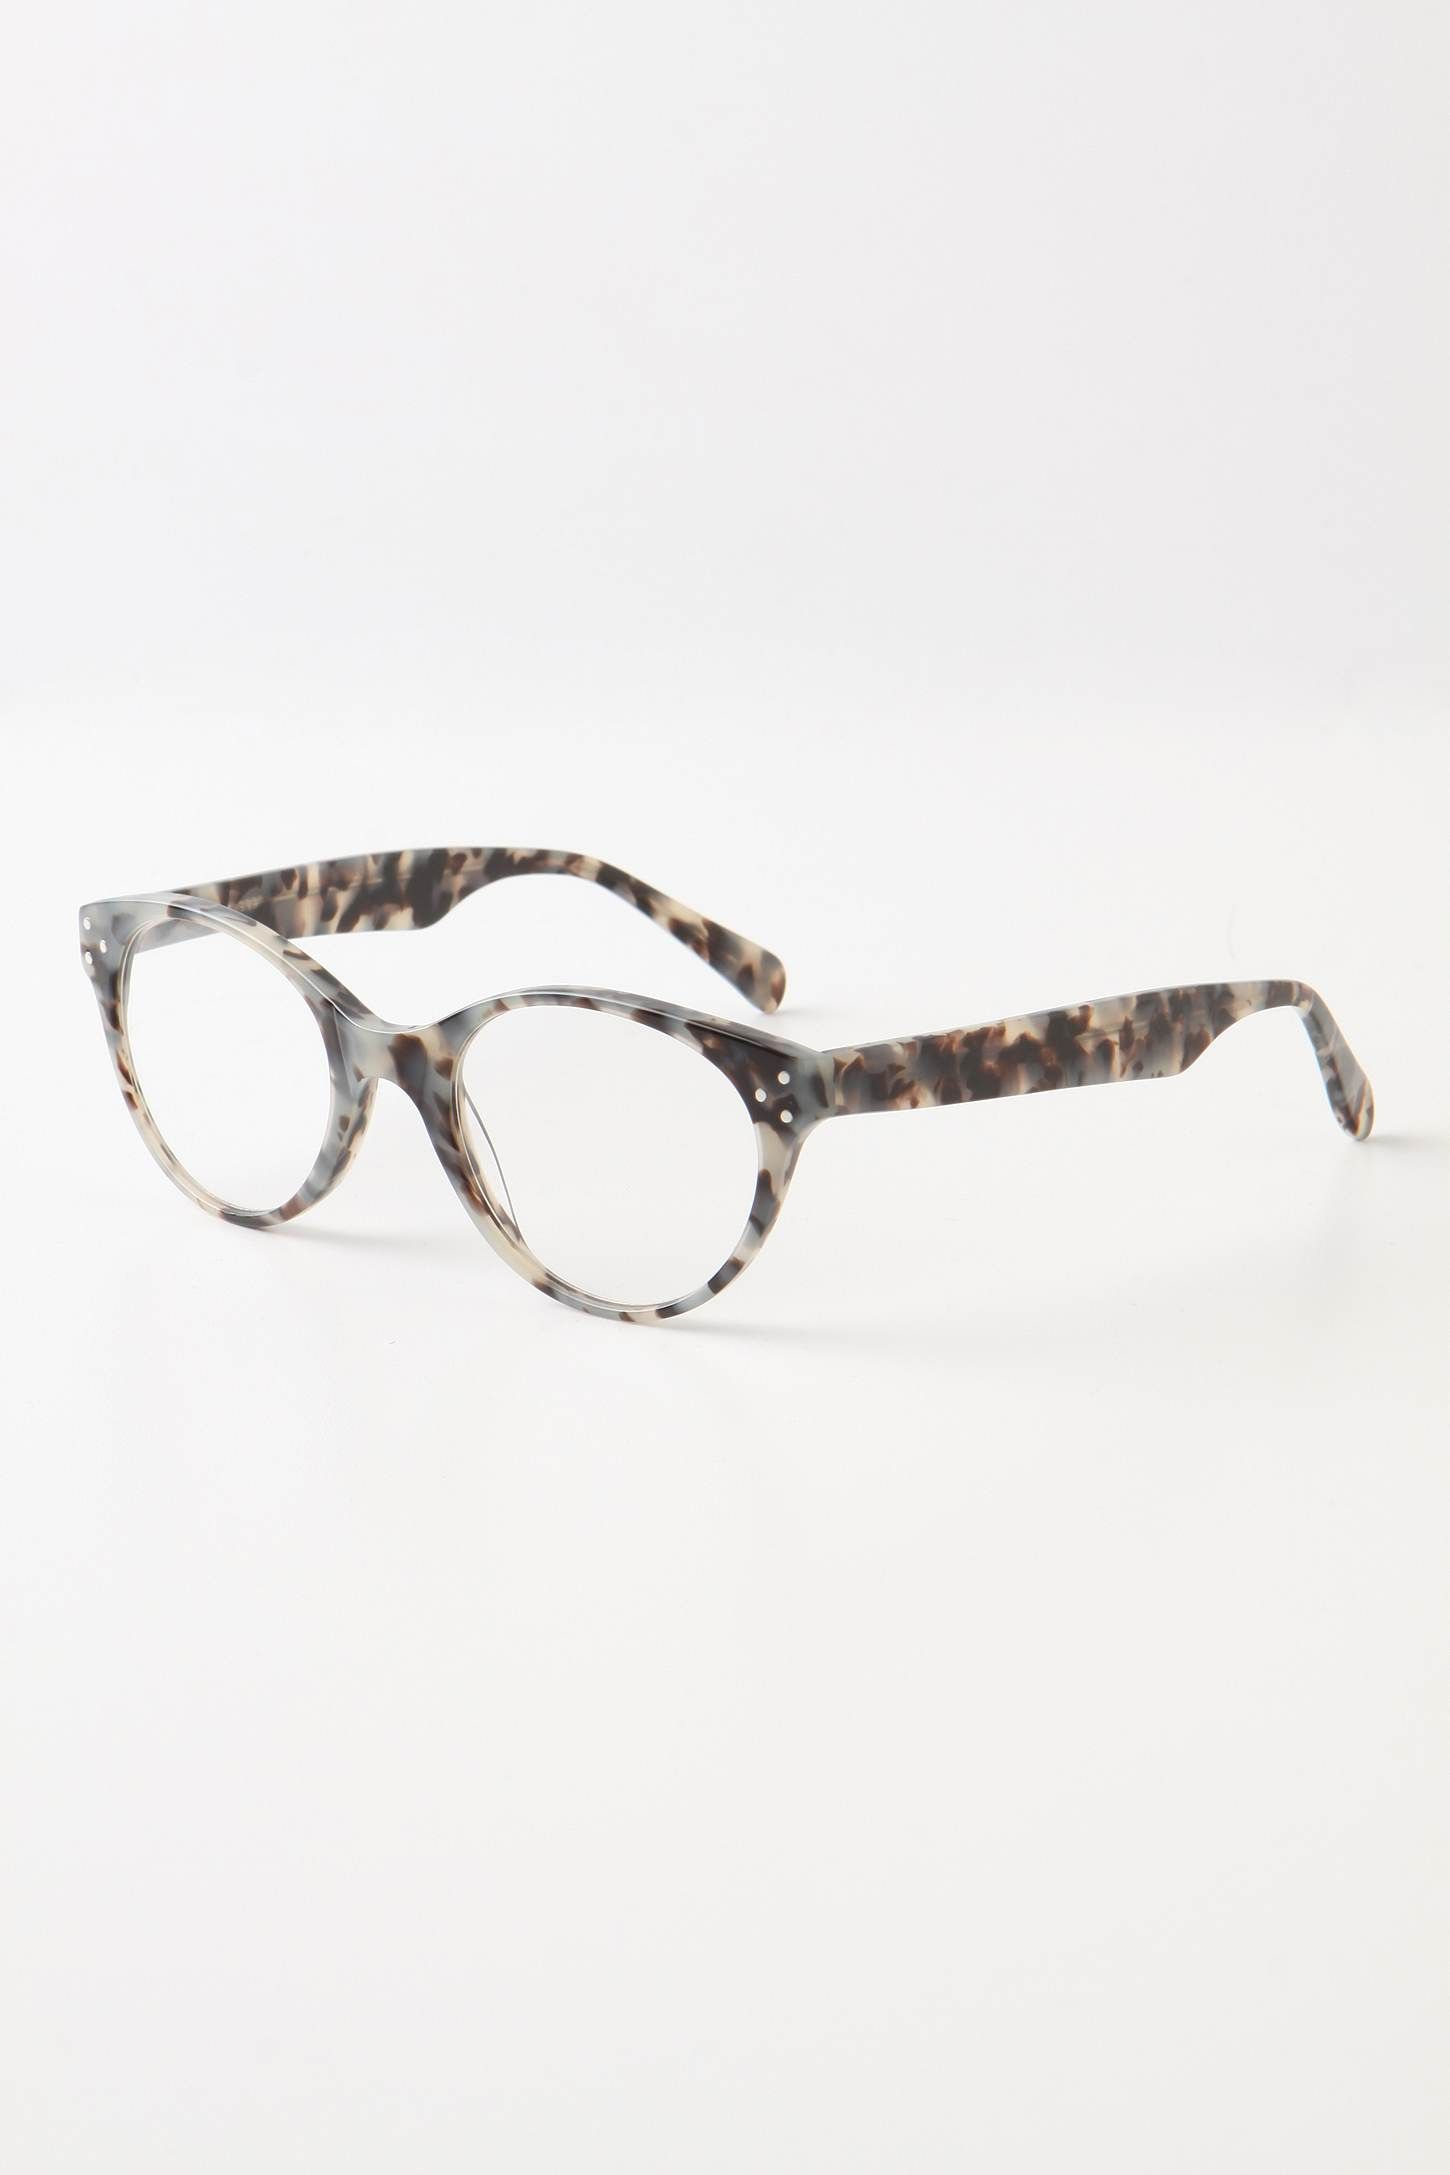 283312b53bb reading glasses from Anthropologie. reading glasses from Anthropologie Cat  Eye ...